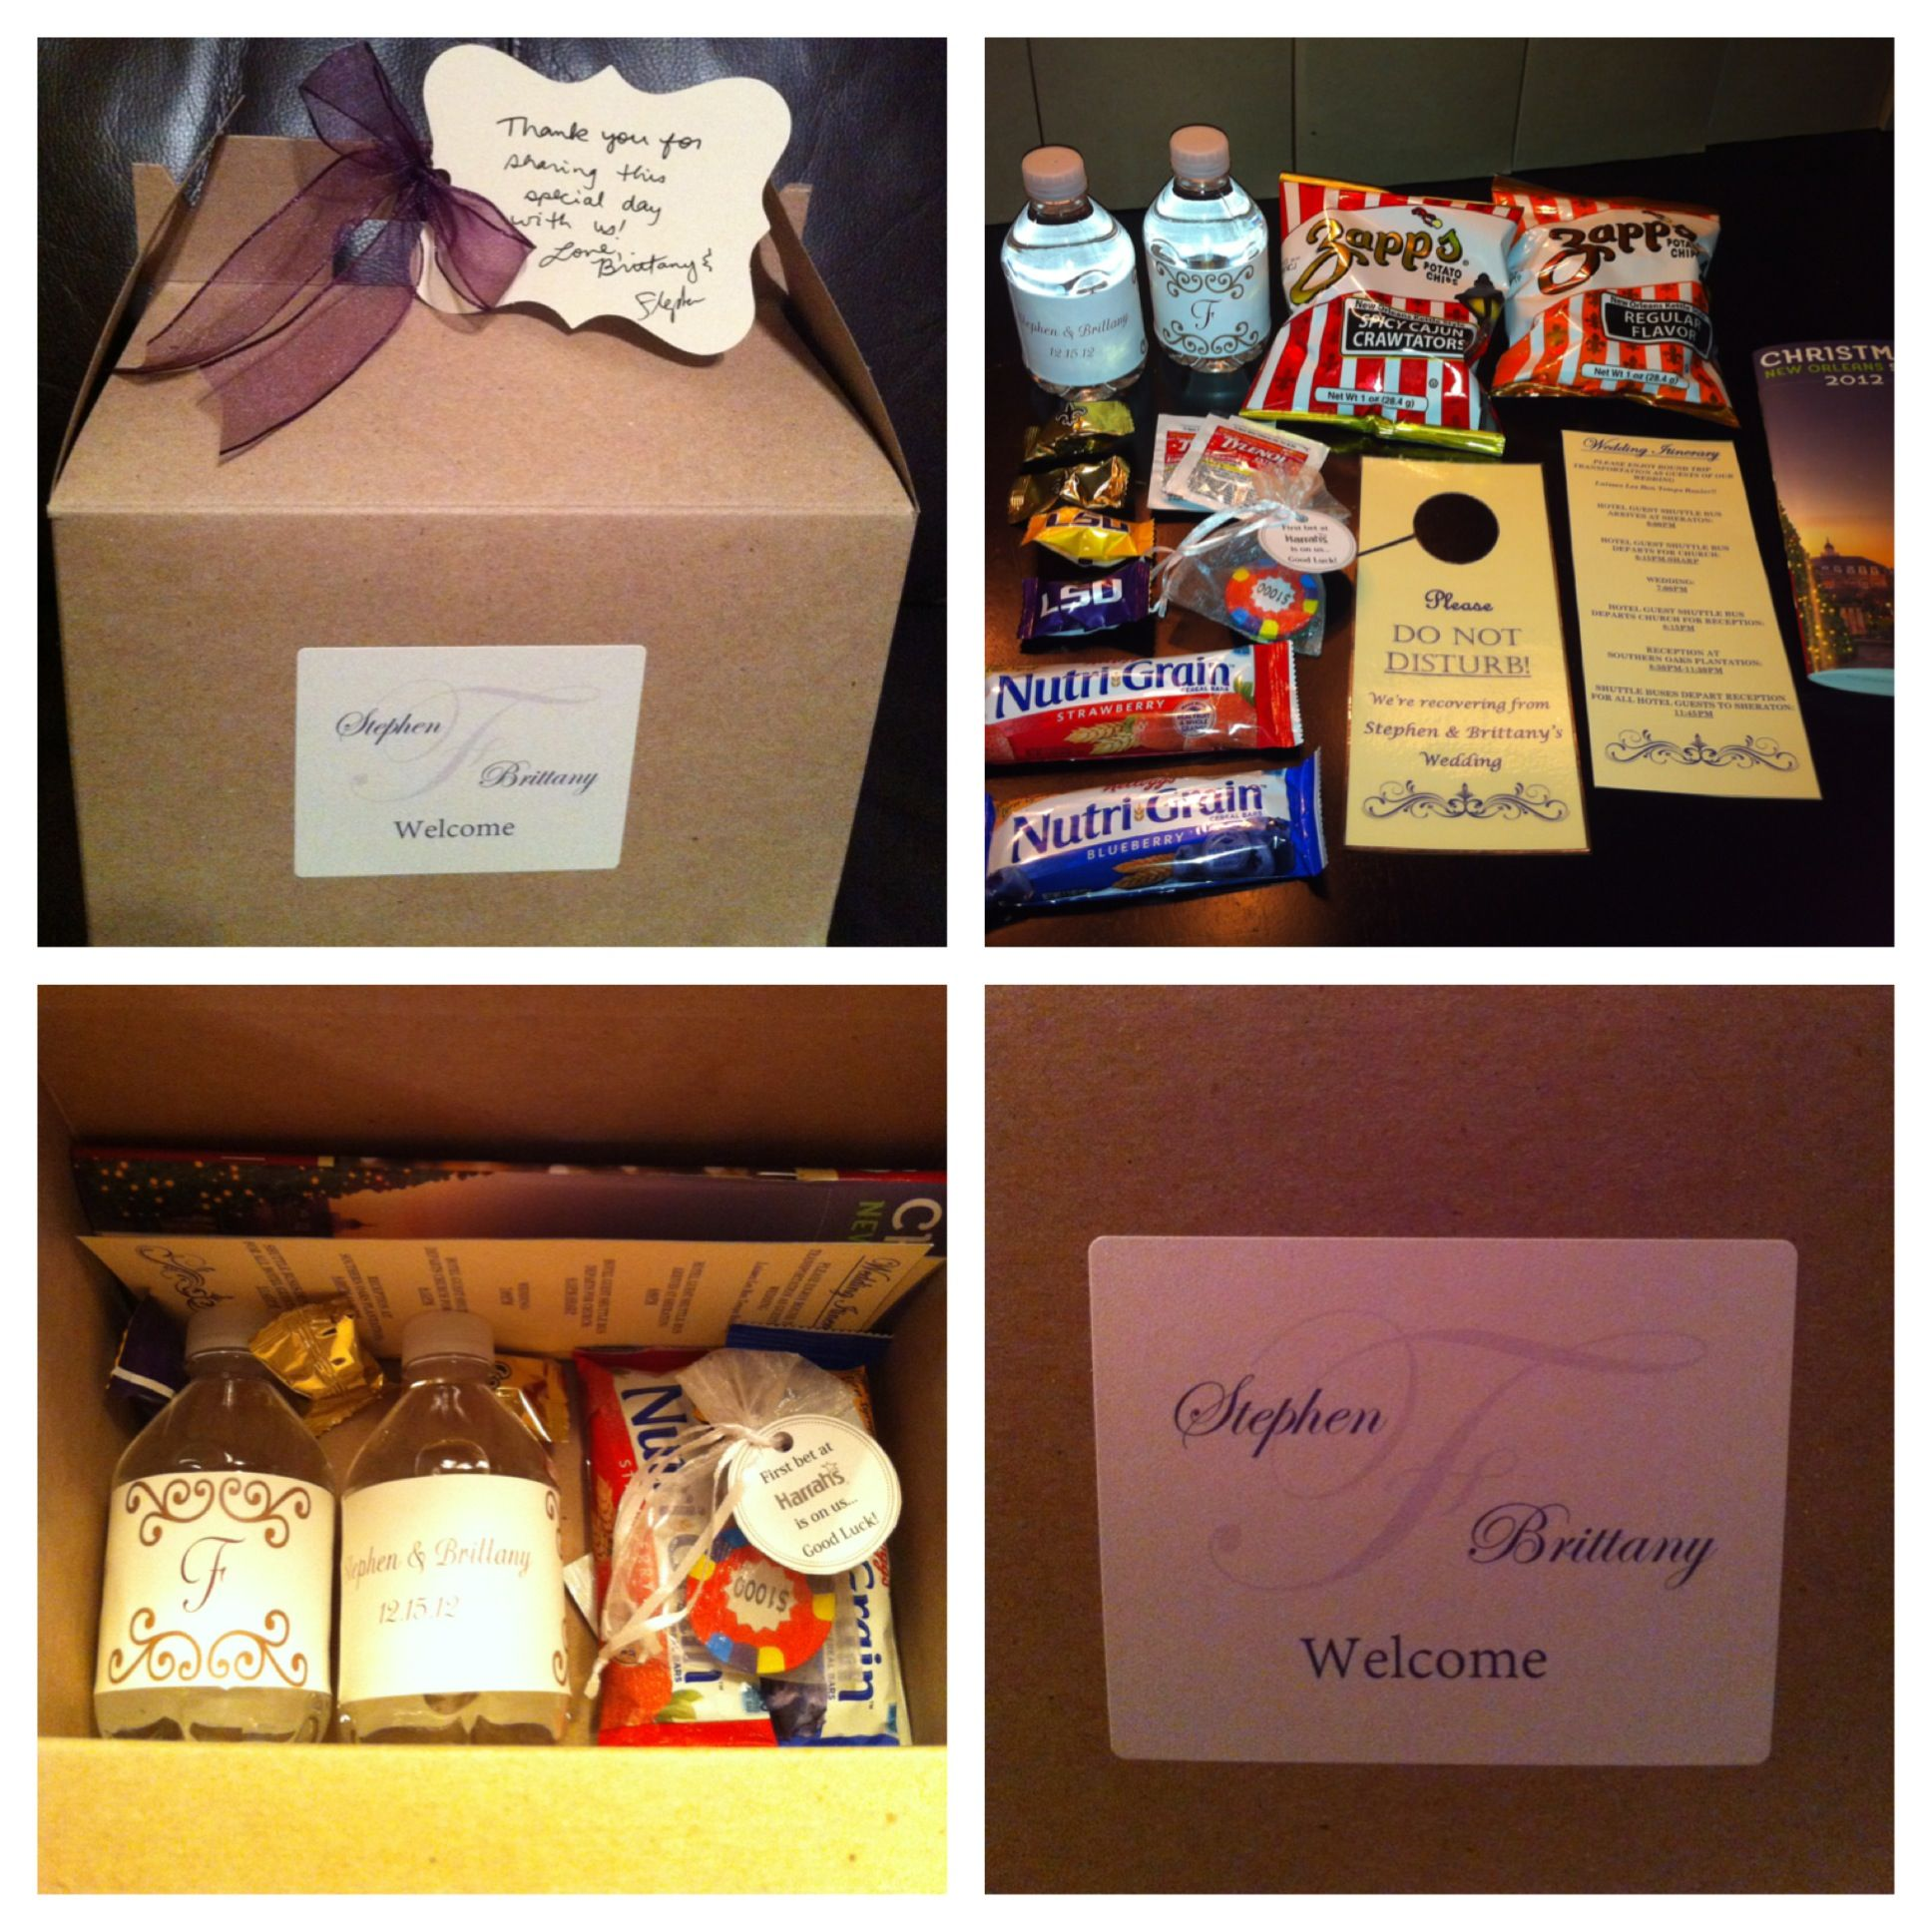 Wedding Hotel Guests Gift Boxes... New Orleans Style